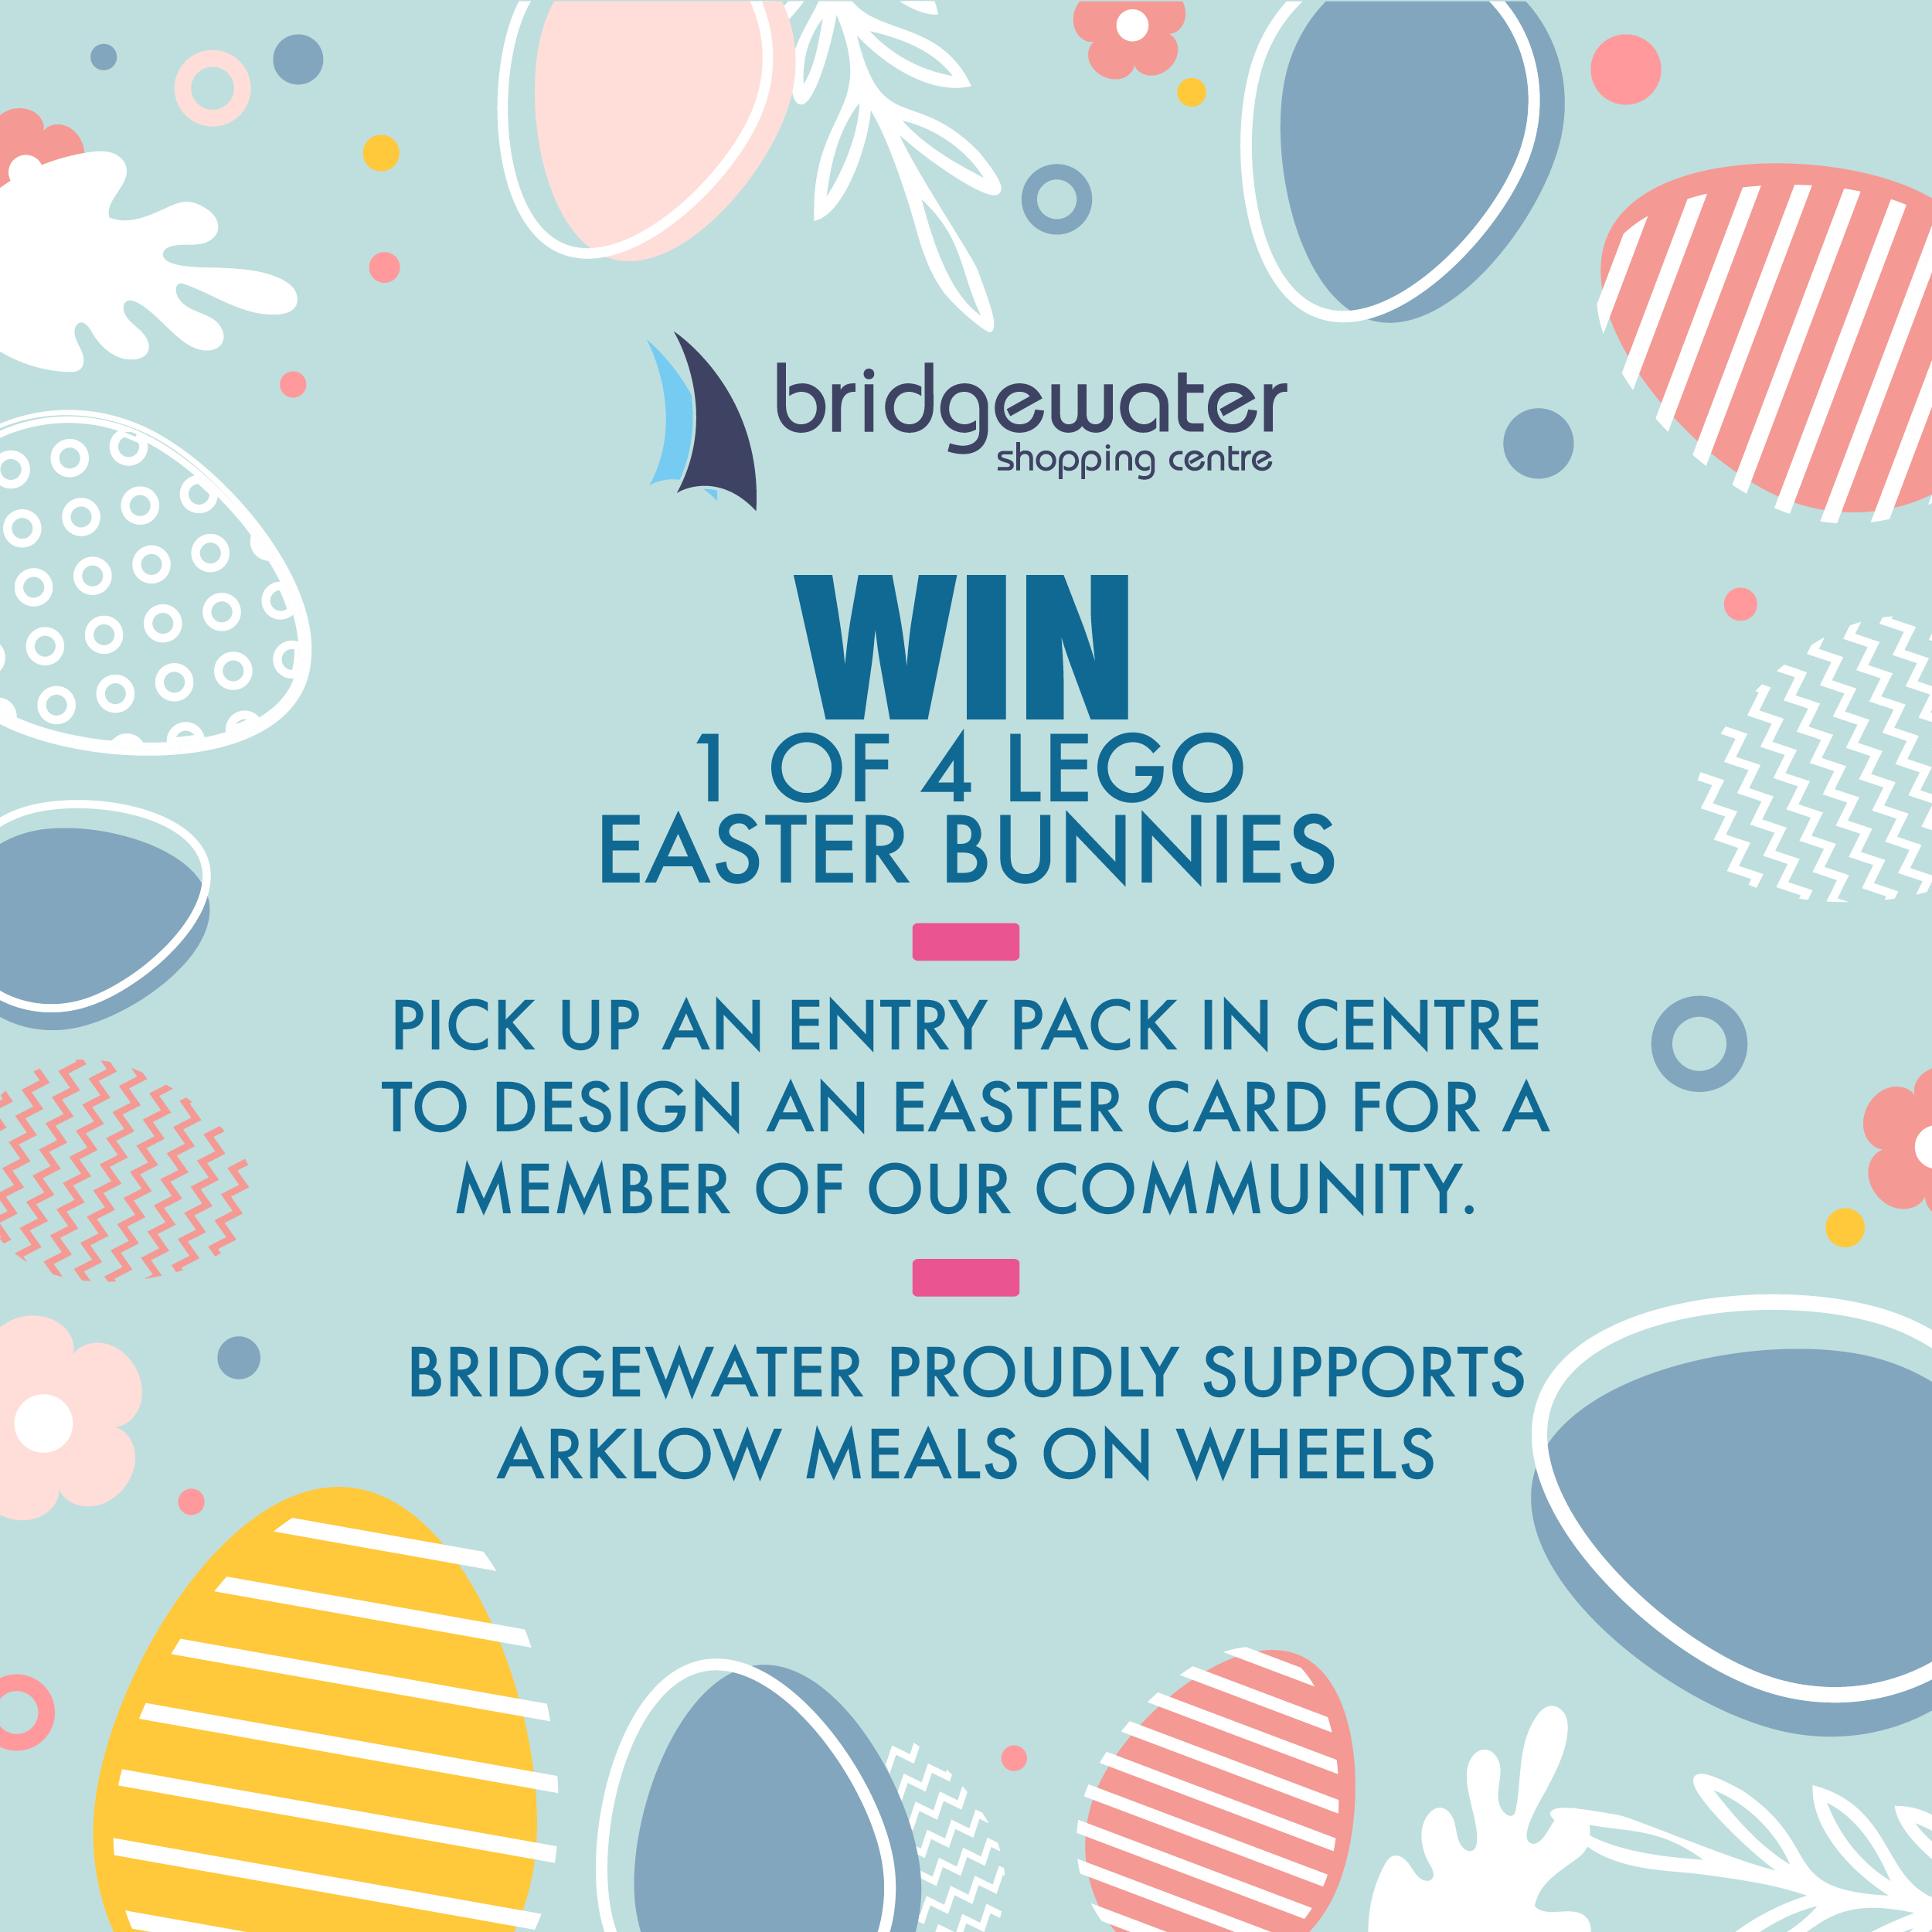 Competition: Win 1 of 4 Easter Lego Bunnies